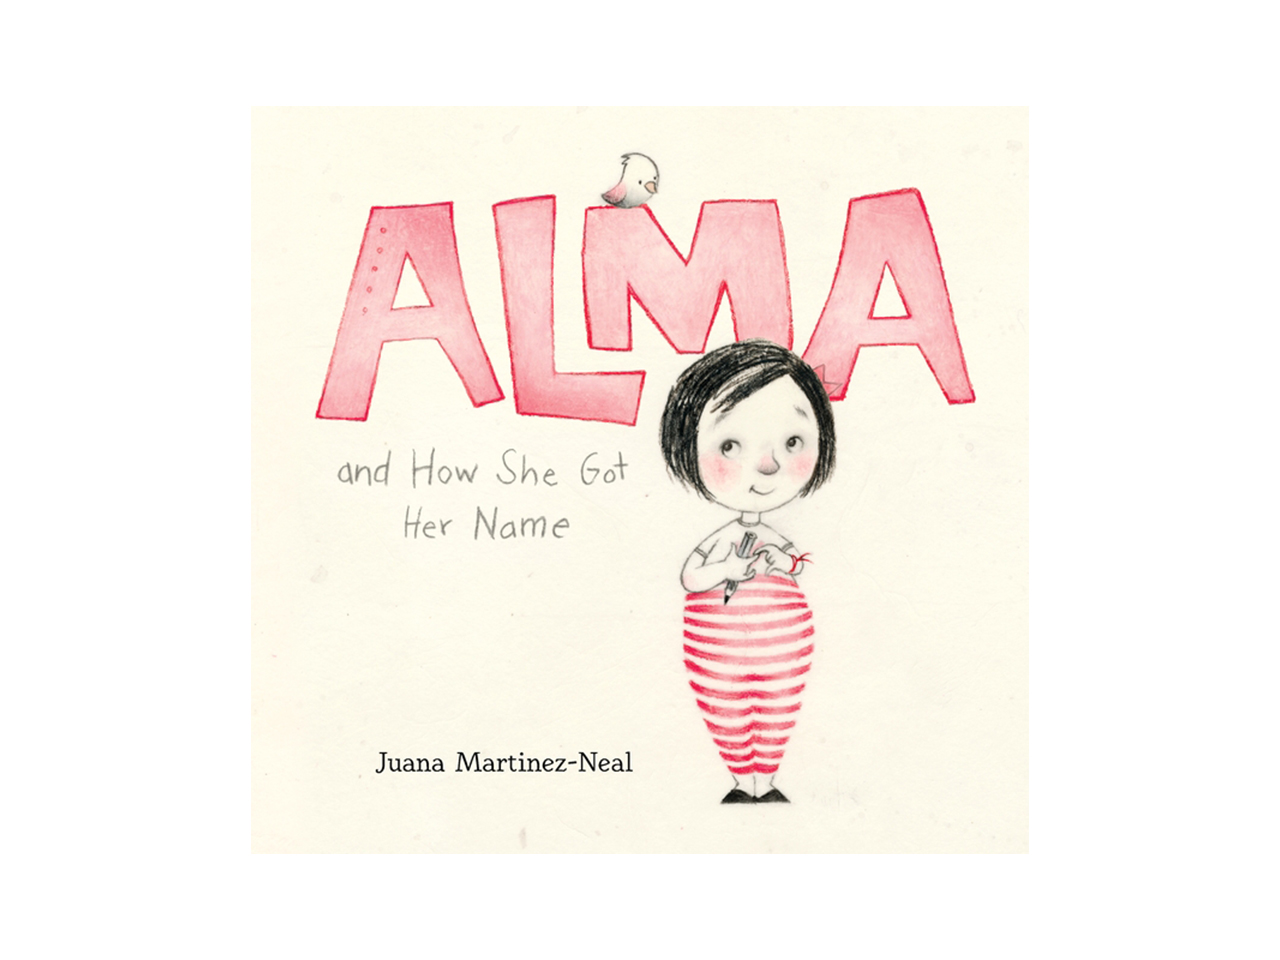 Cover art for Alma and How She Got Her Name showing an illustrated girl wearing striped pants and holding a pencil